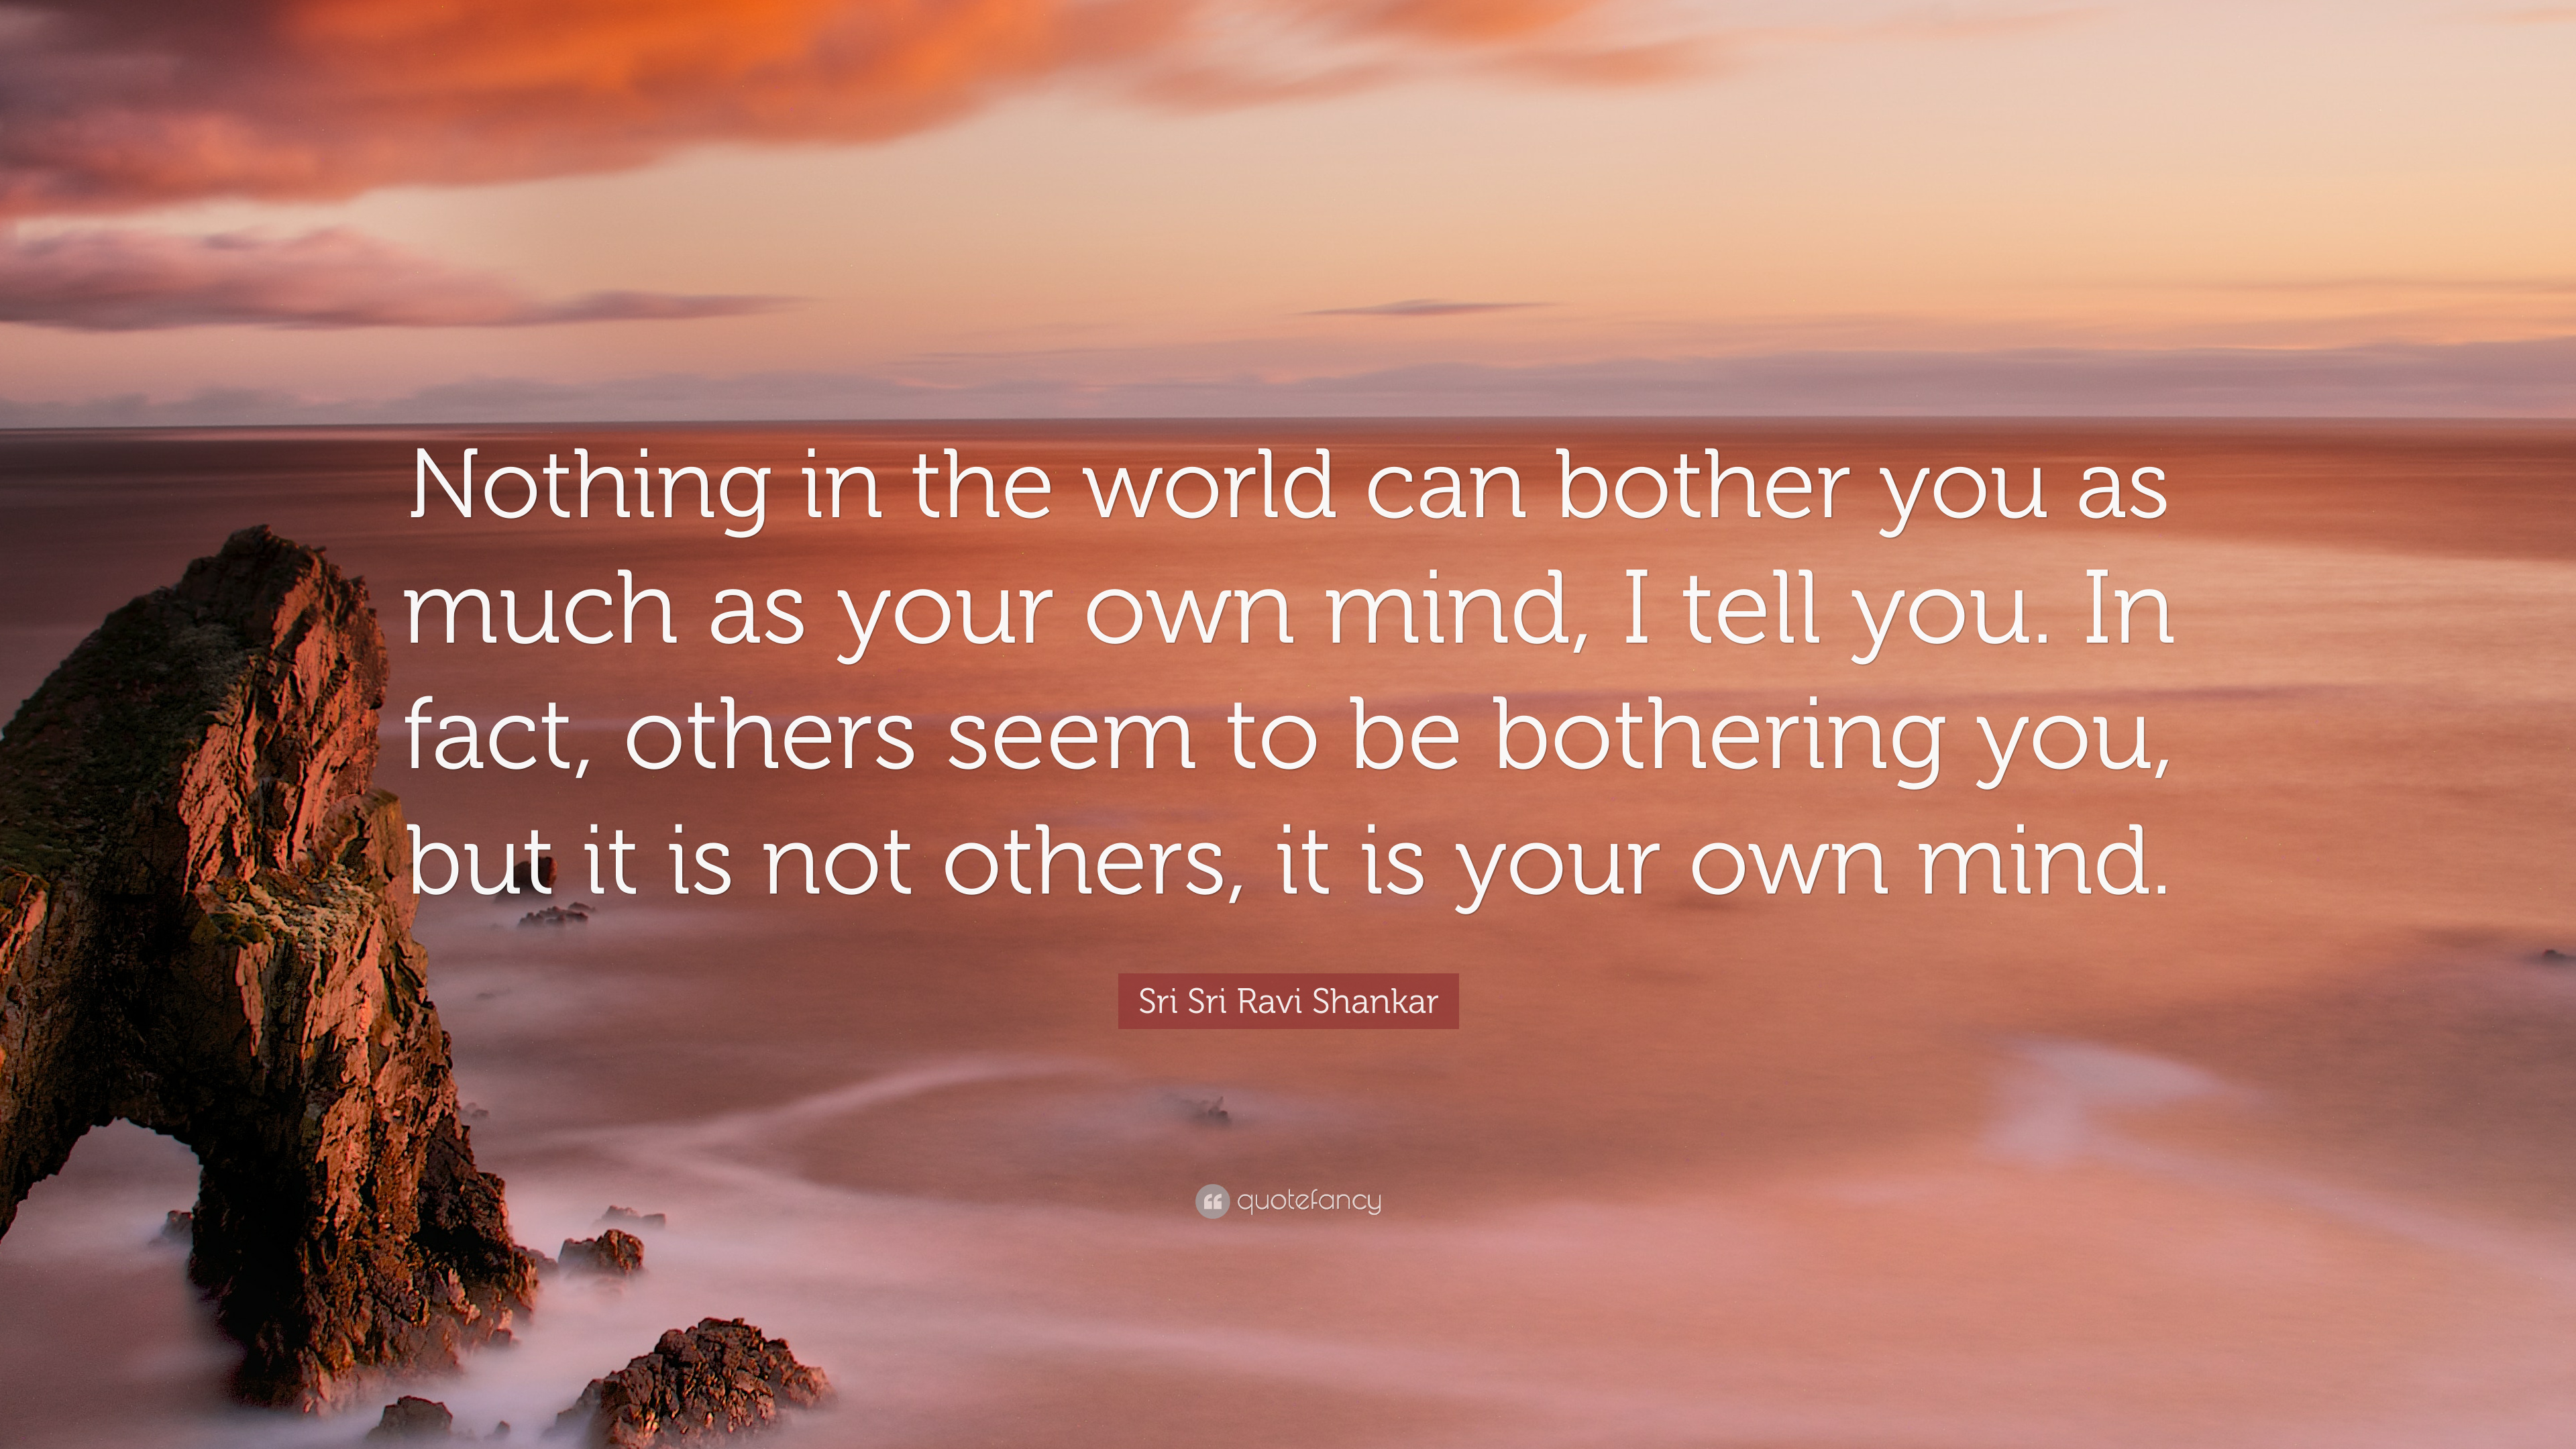 Sri Sri Ravi Shankar Quote Nothing In The World Can Bother You As